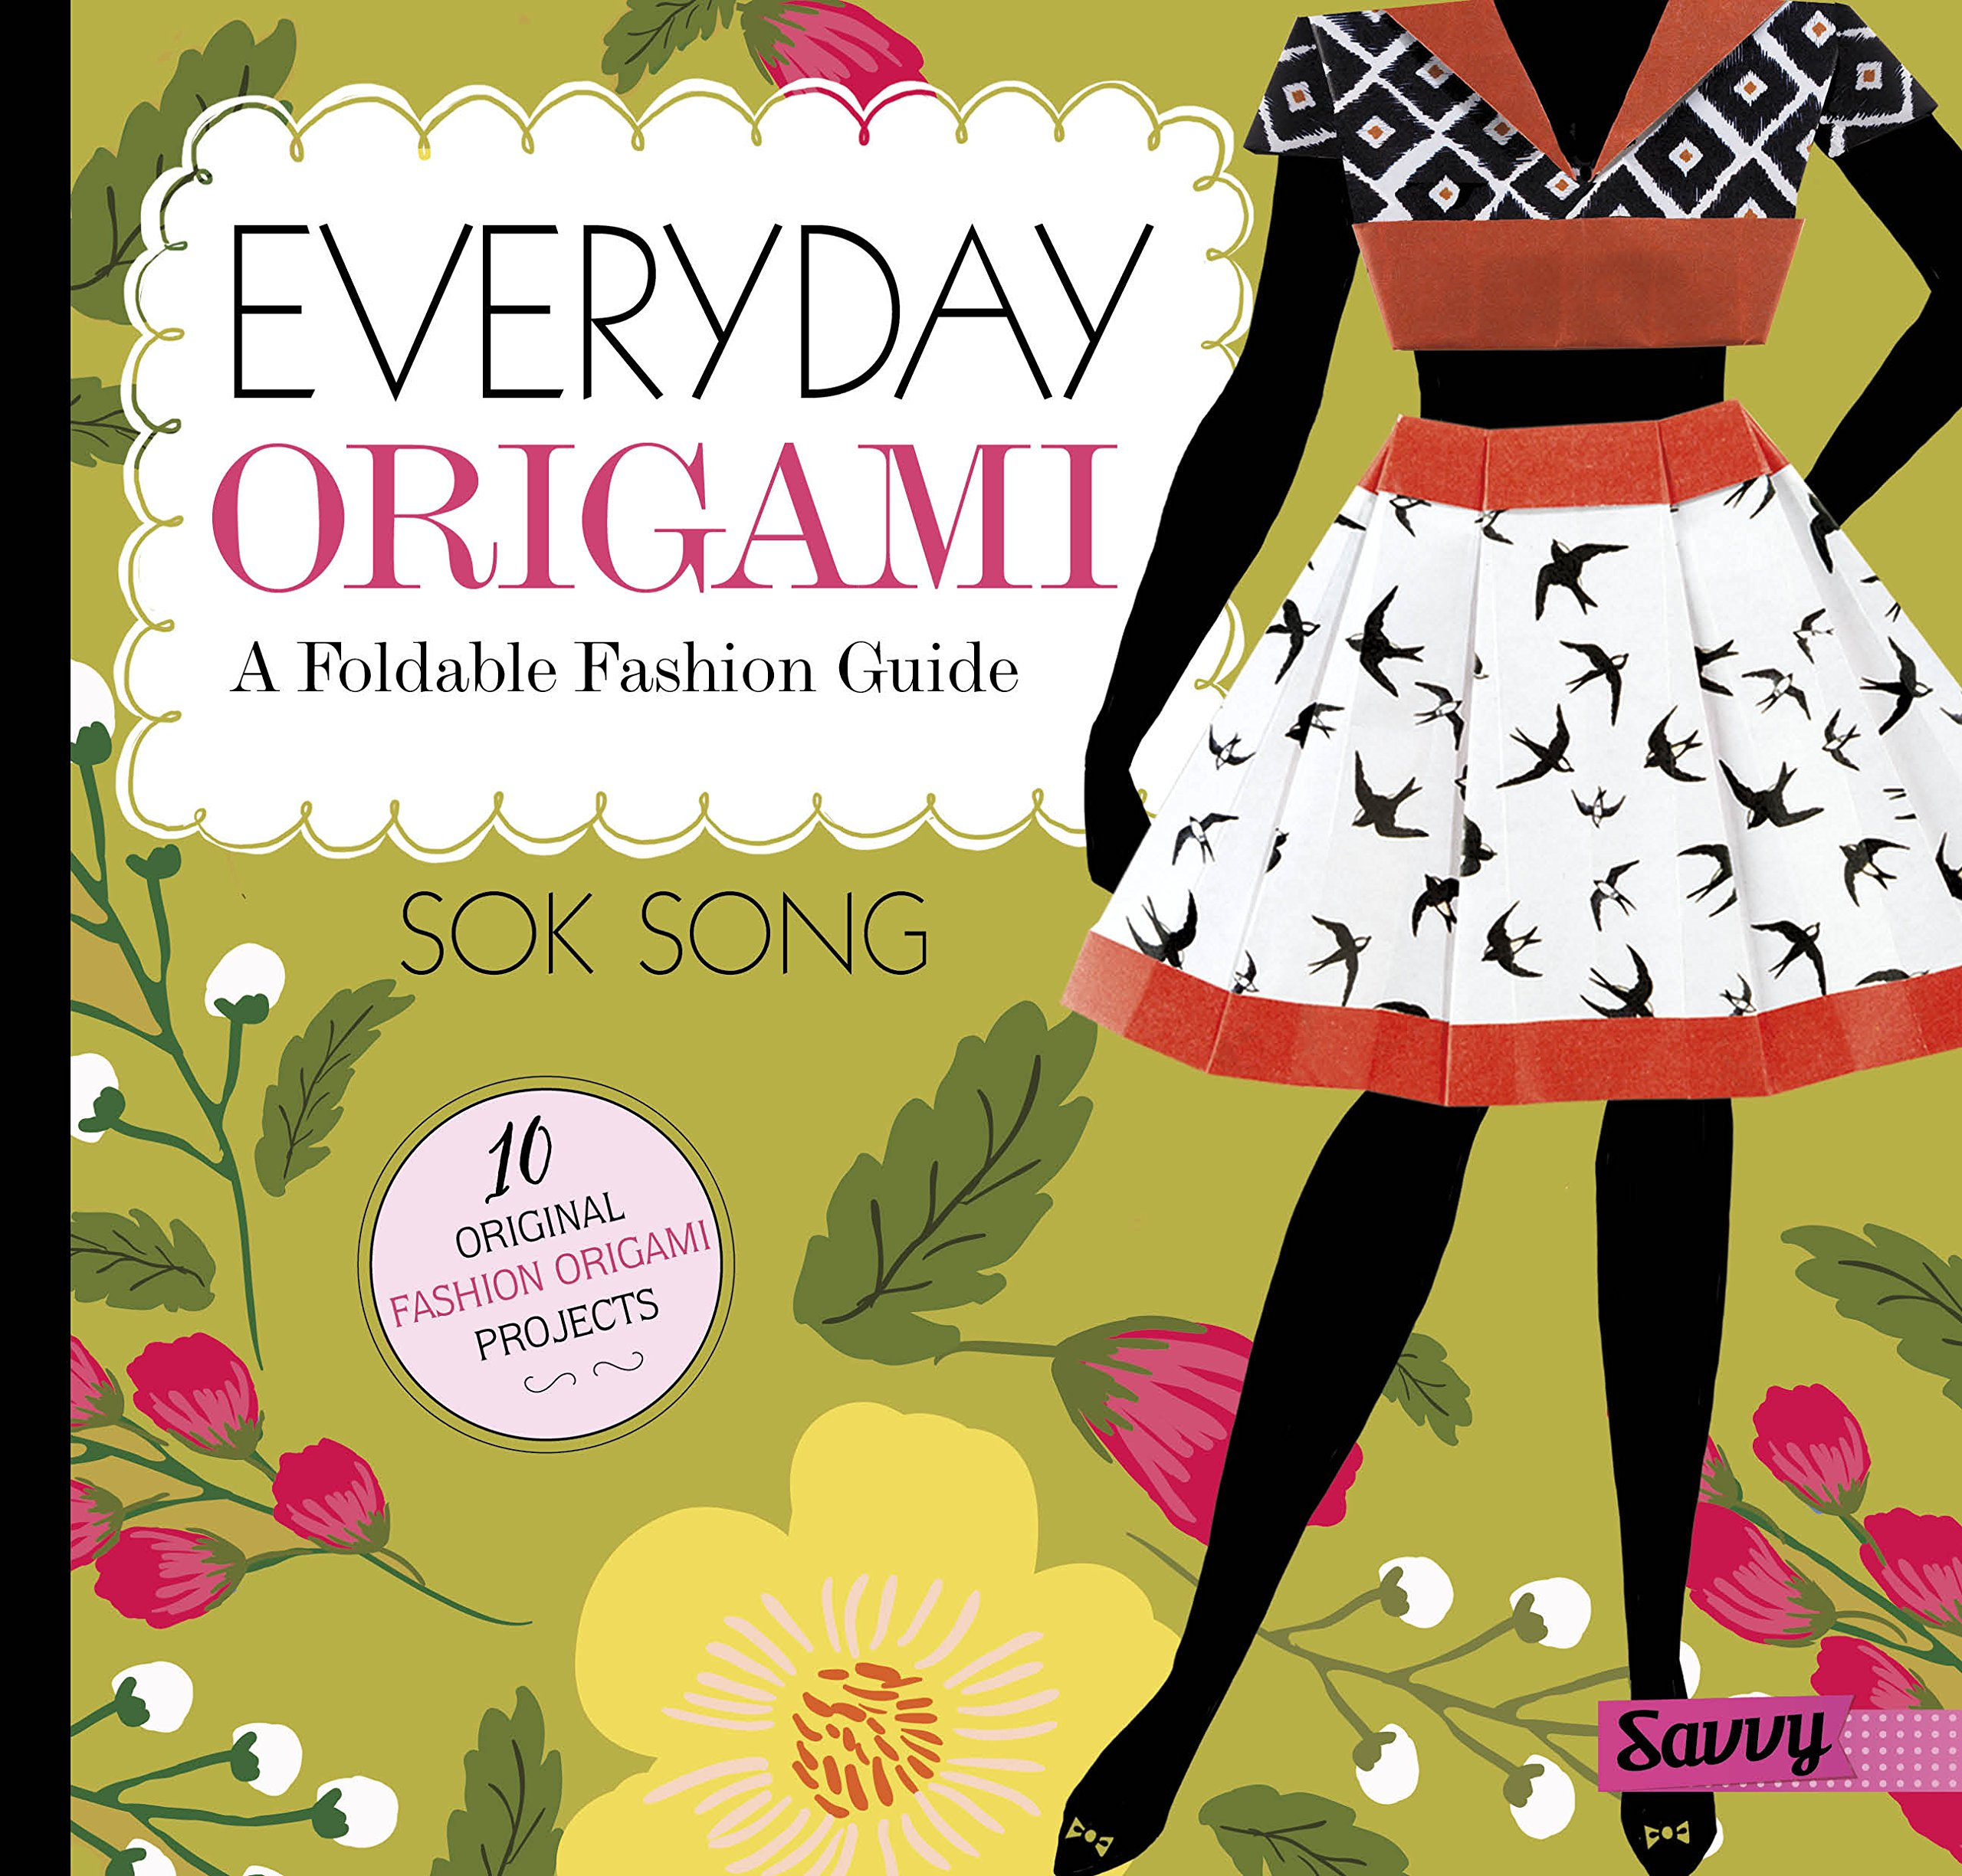 Everyday Origami A Foldable Fashion Guide Fashion Origami Song Sok Song Sok 9781515716303 Amazon Com Books